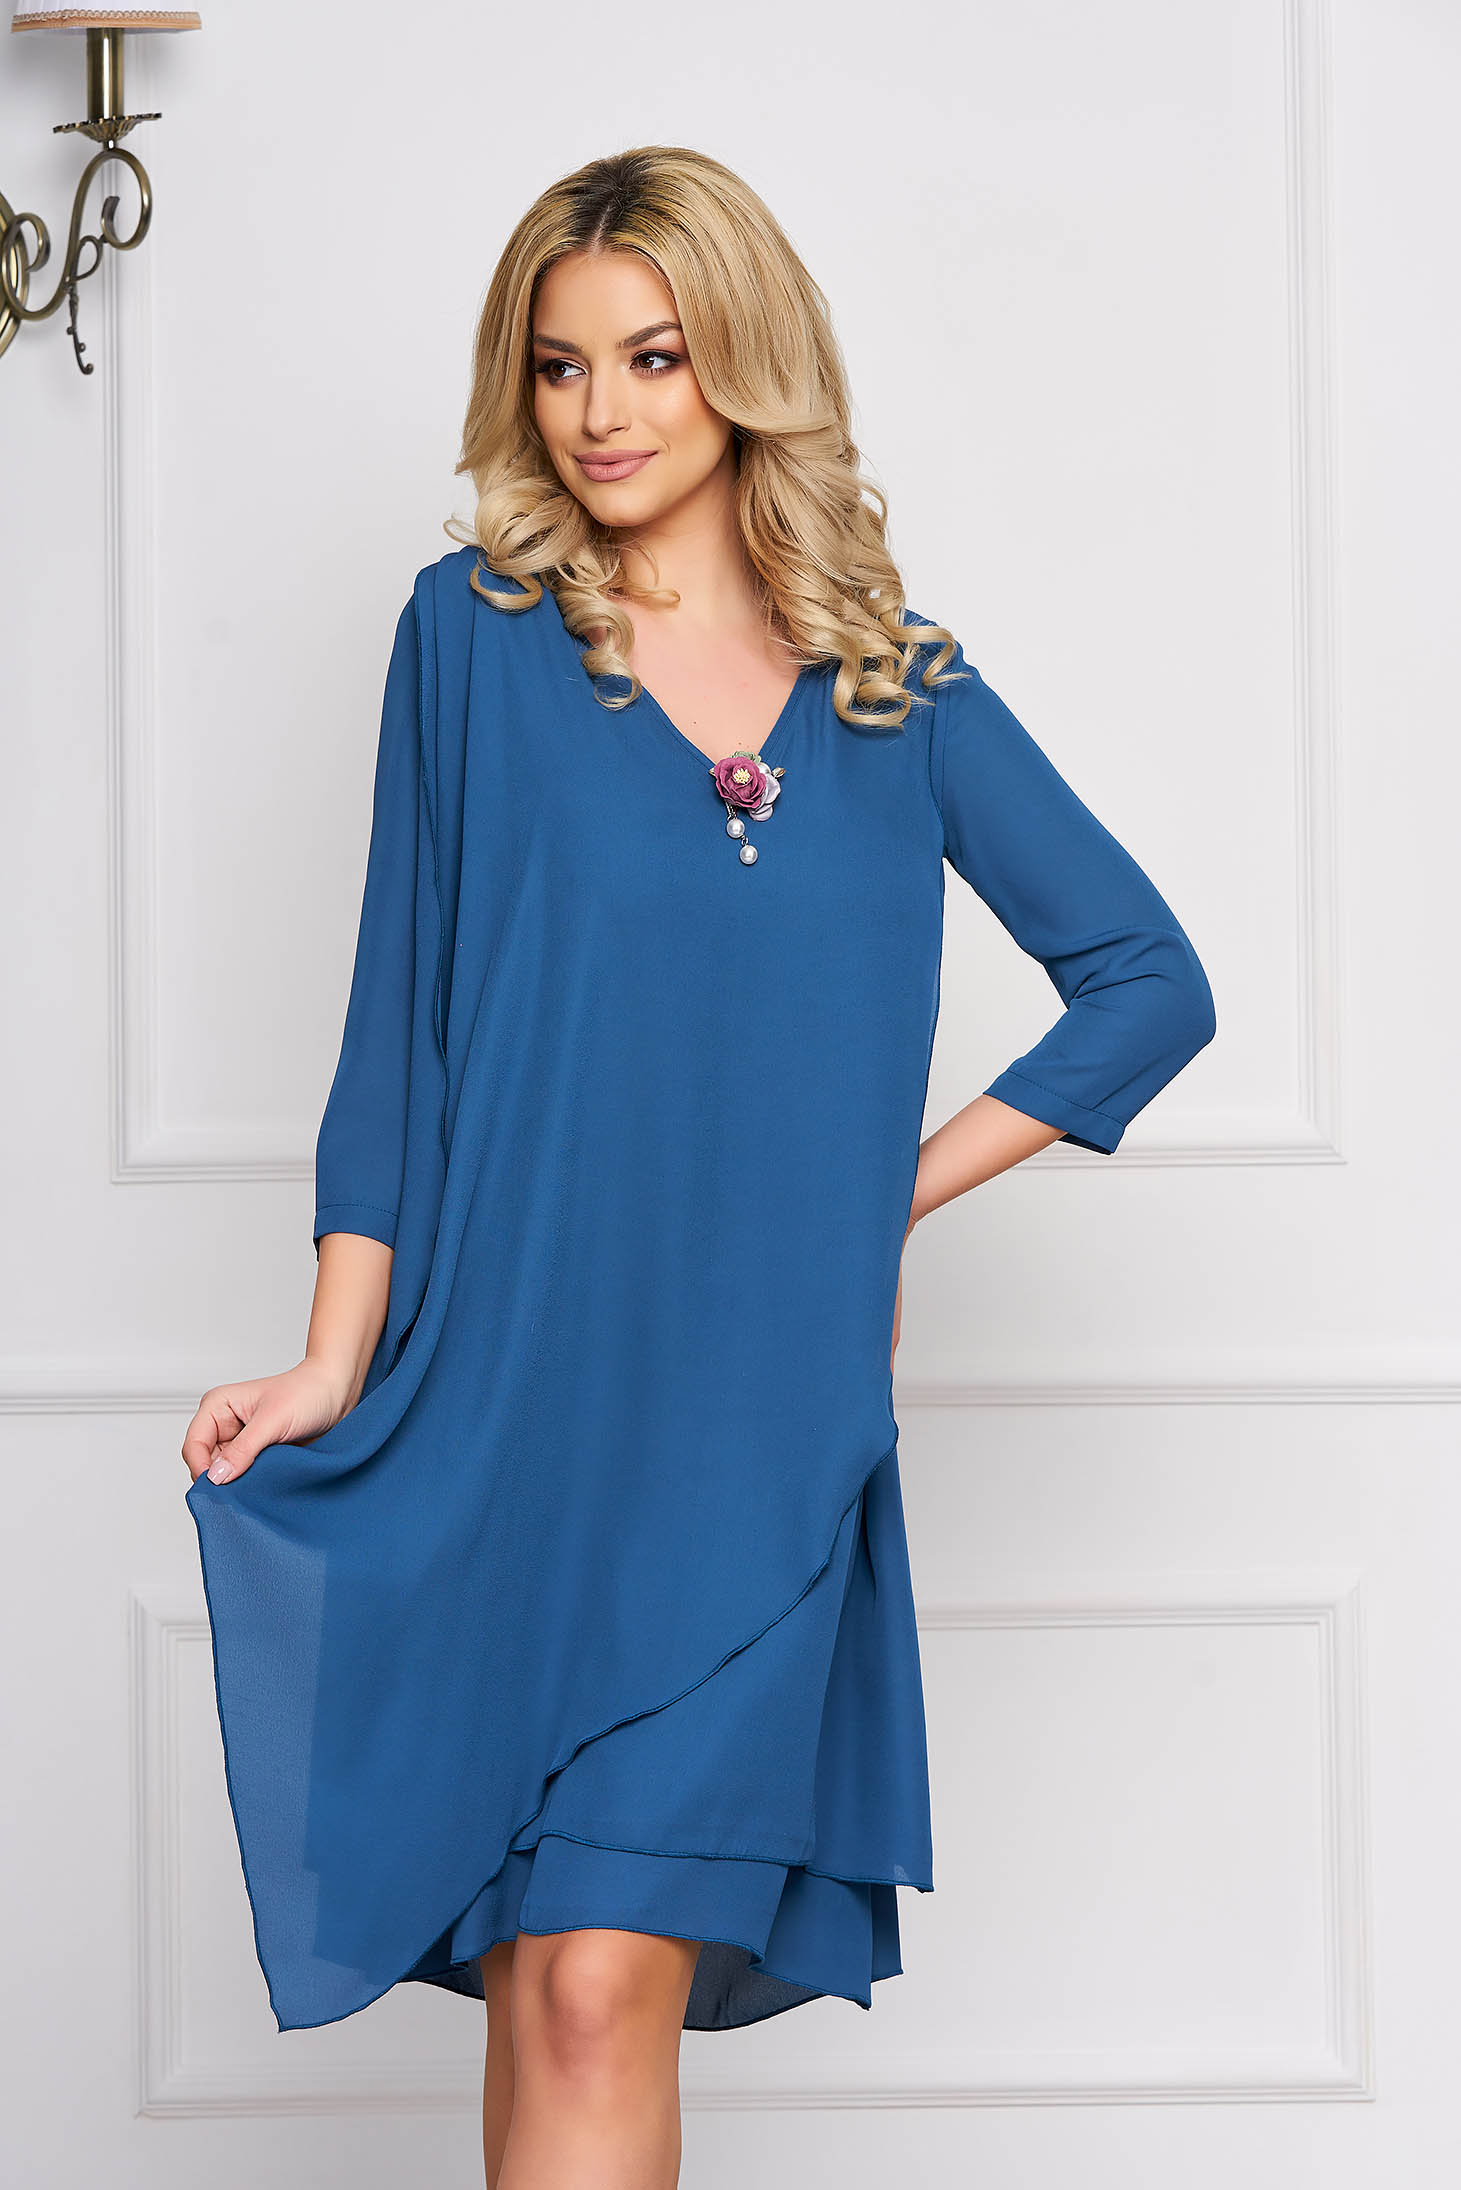 Dress StarShinerS turquoise elegant midi flared accessorized with breastpin